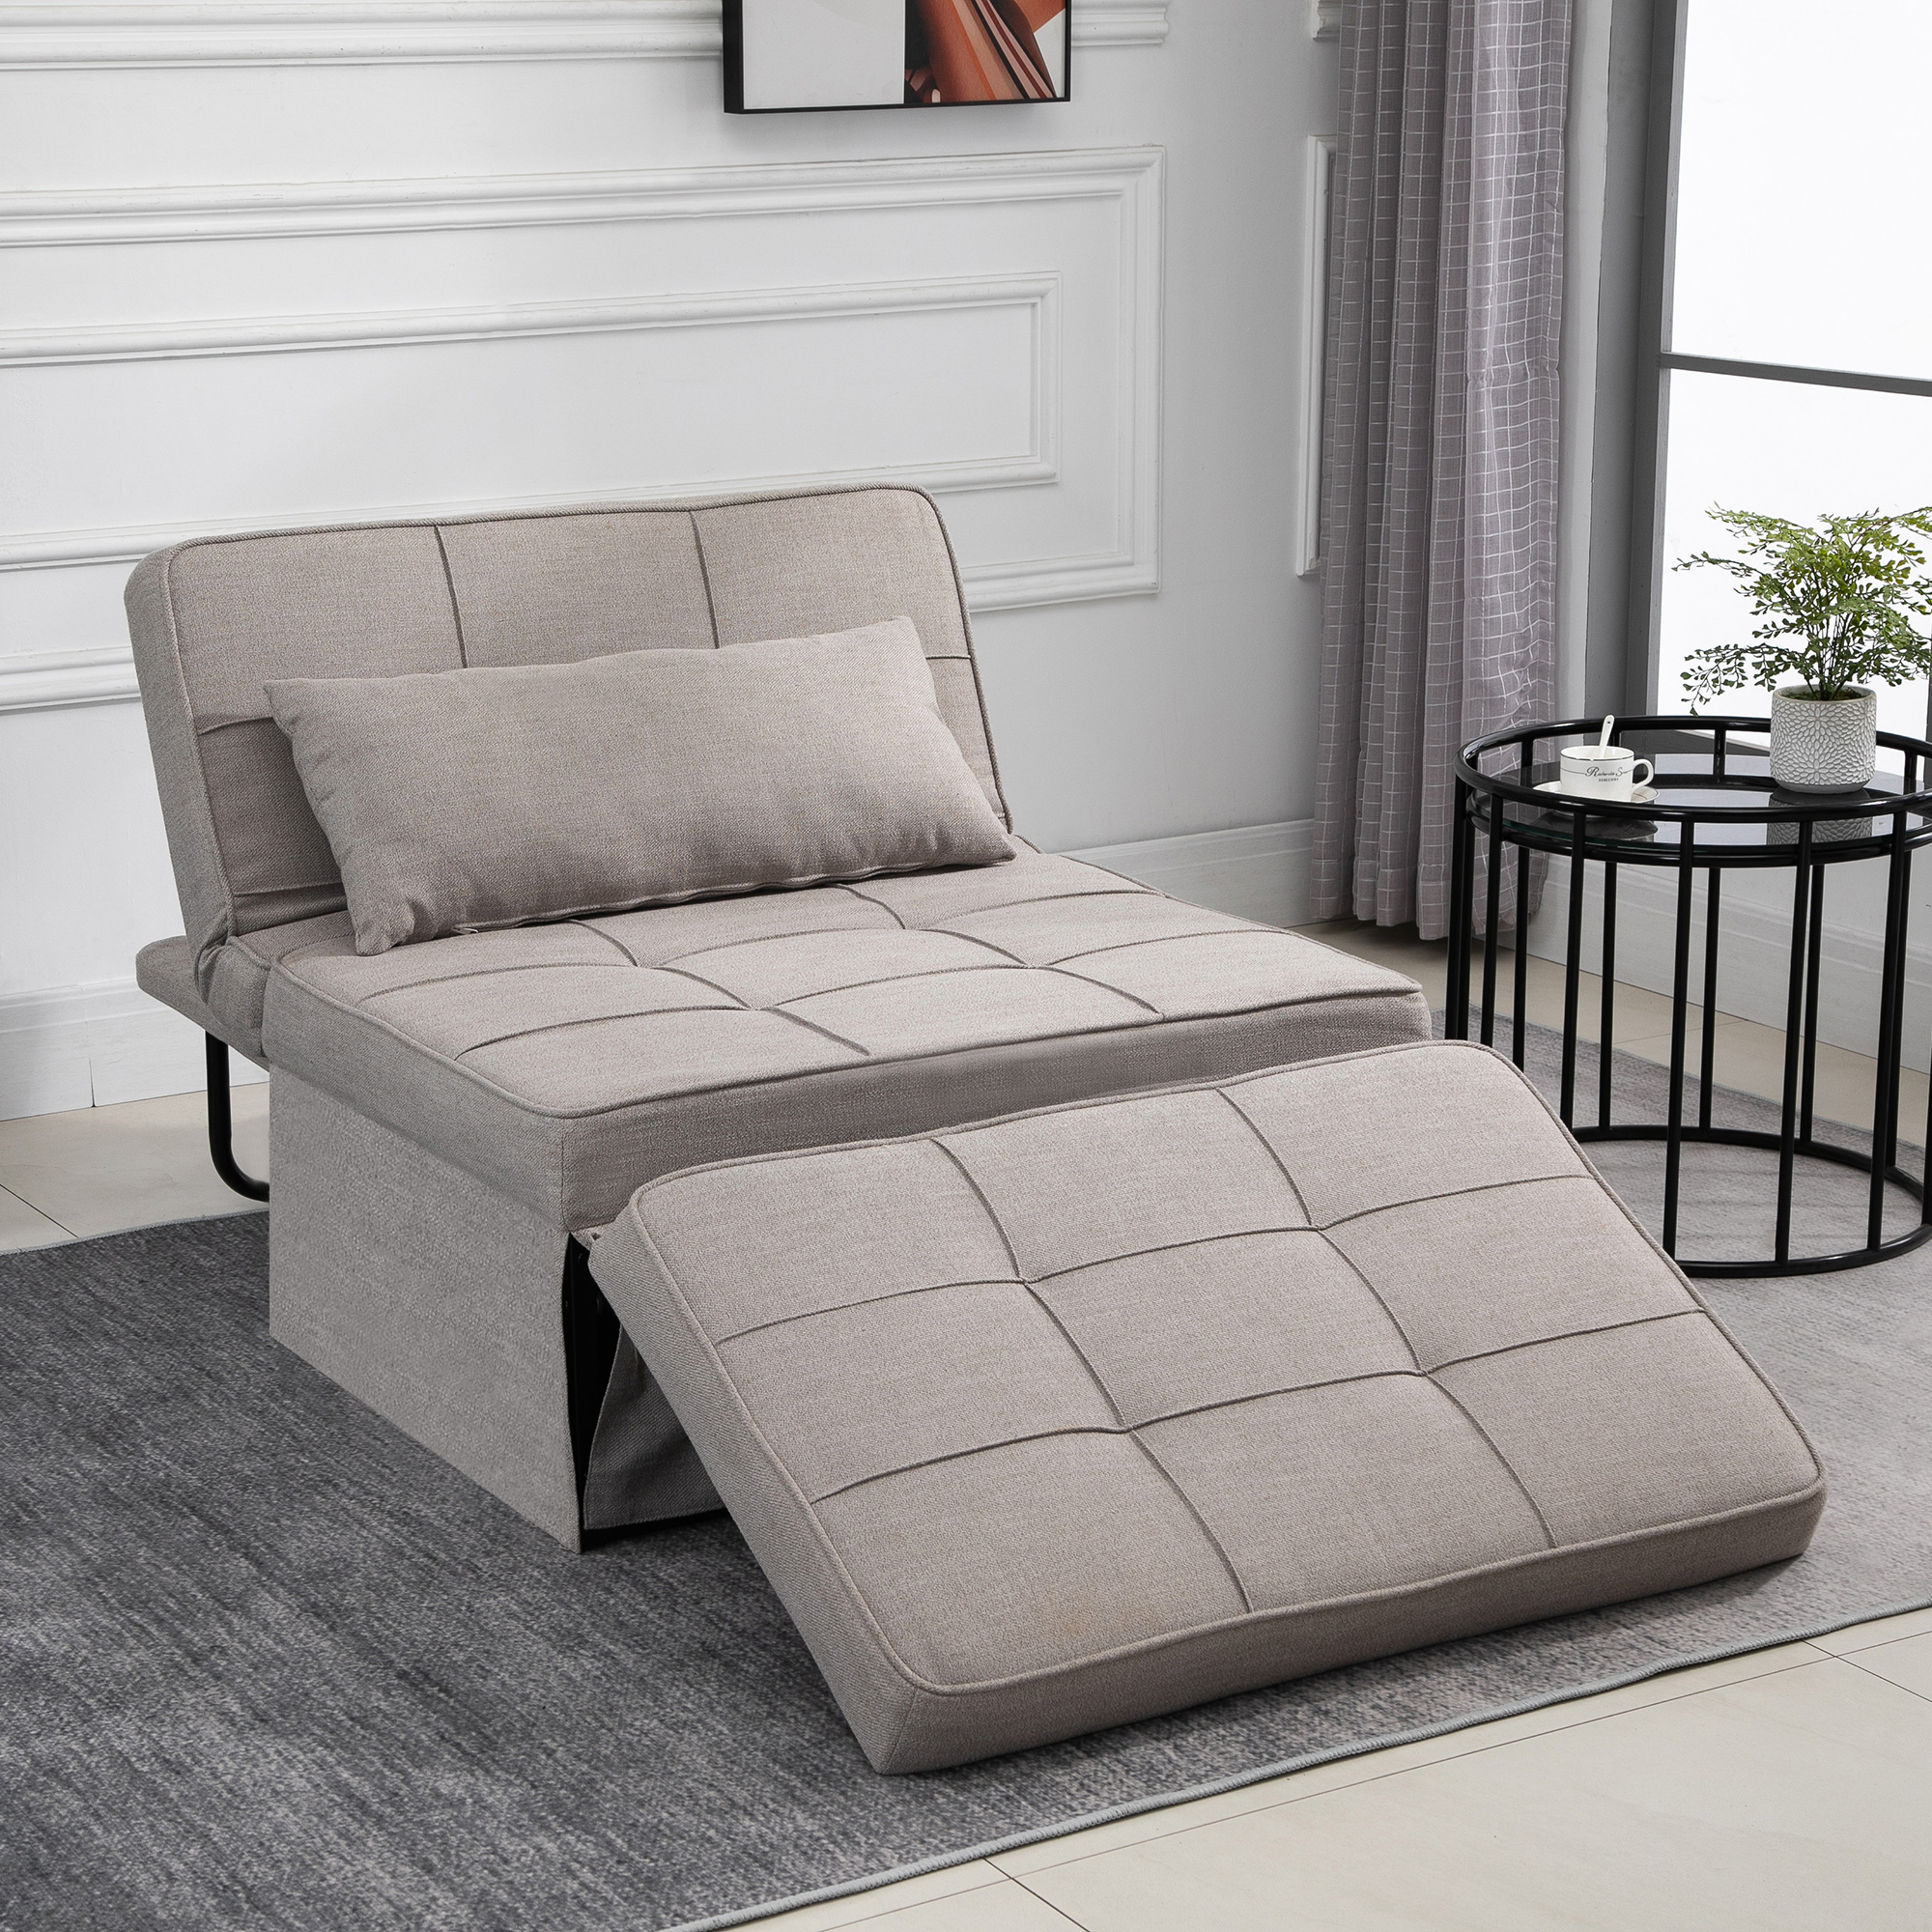 Picture of: 2 Person Convertible Sofabed With Adjustable Backrest Footstool For Living Room Ebay